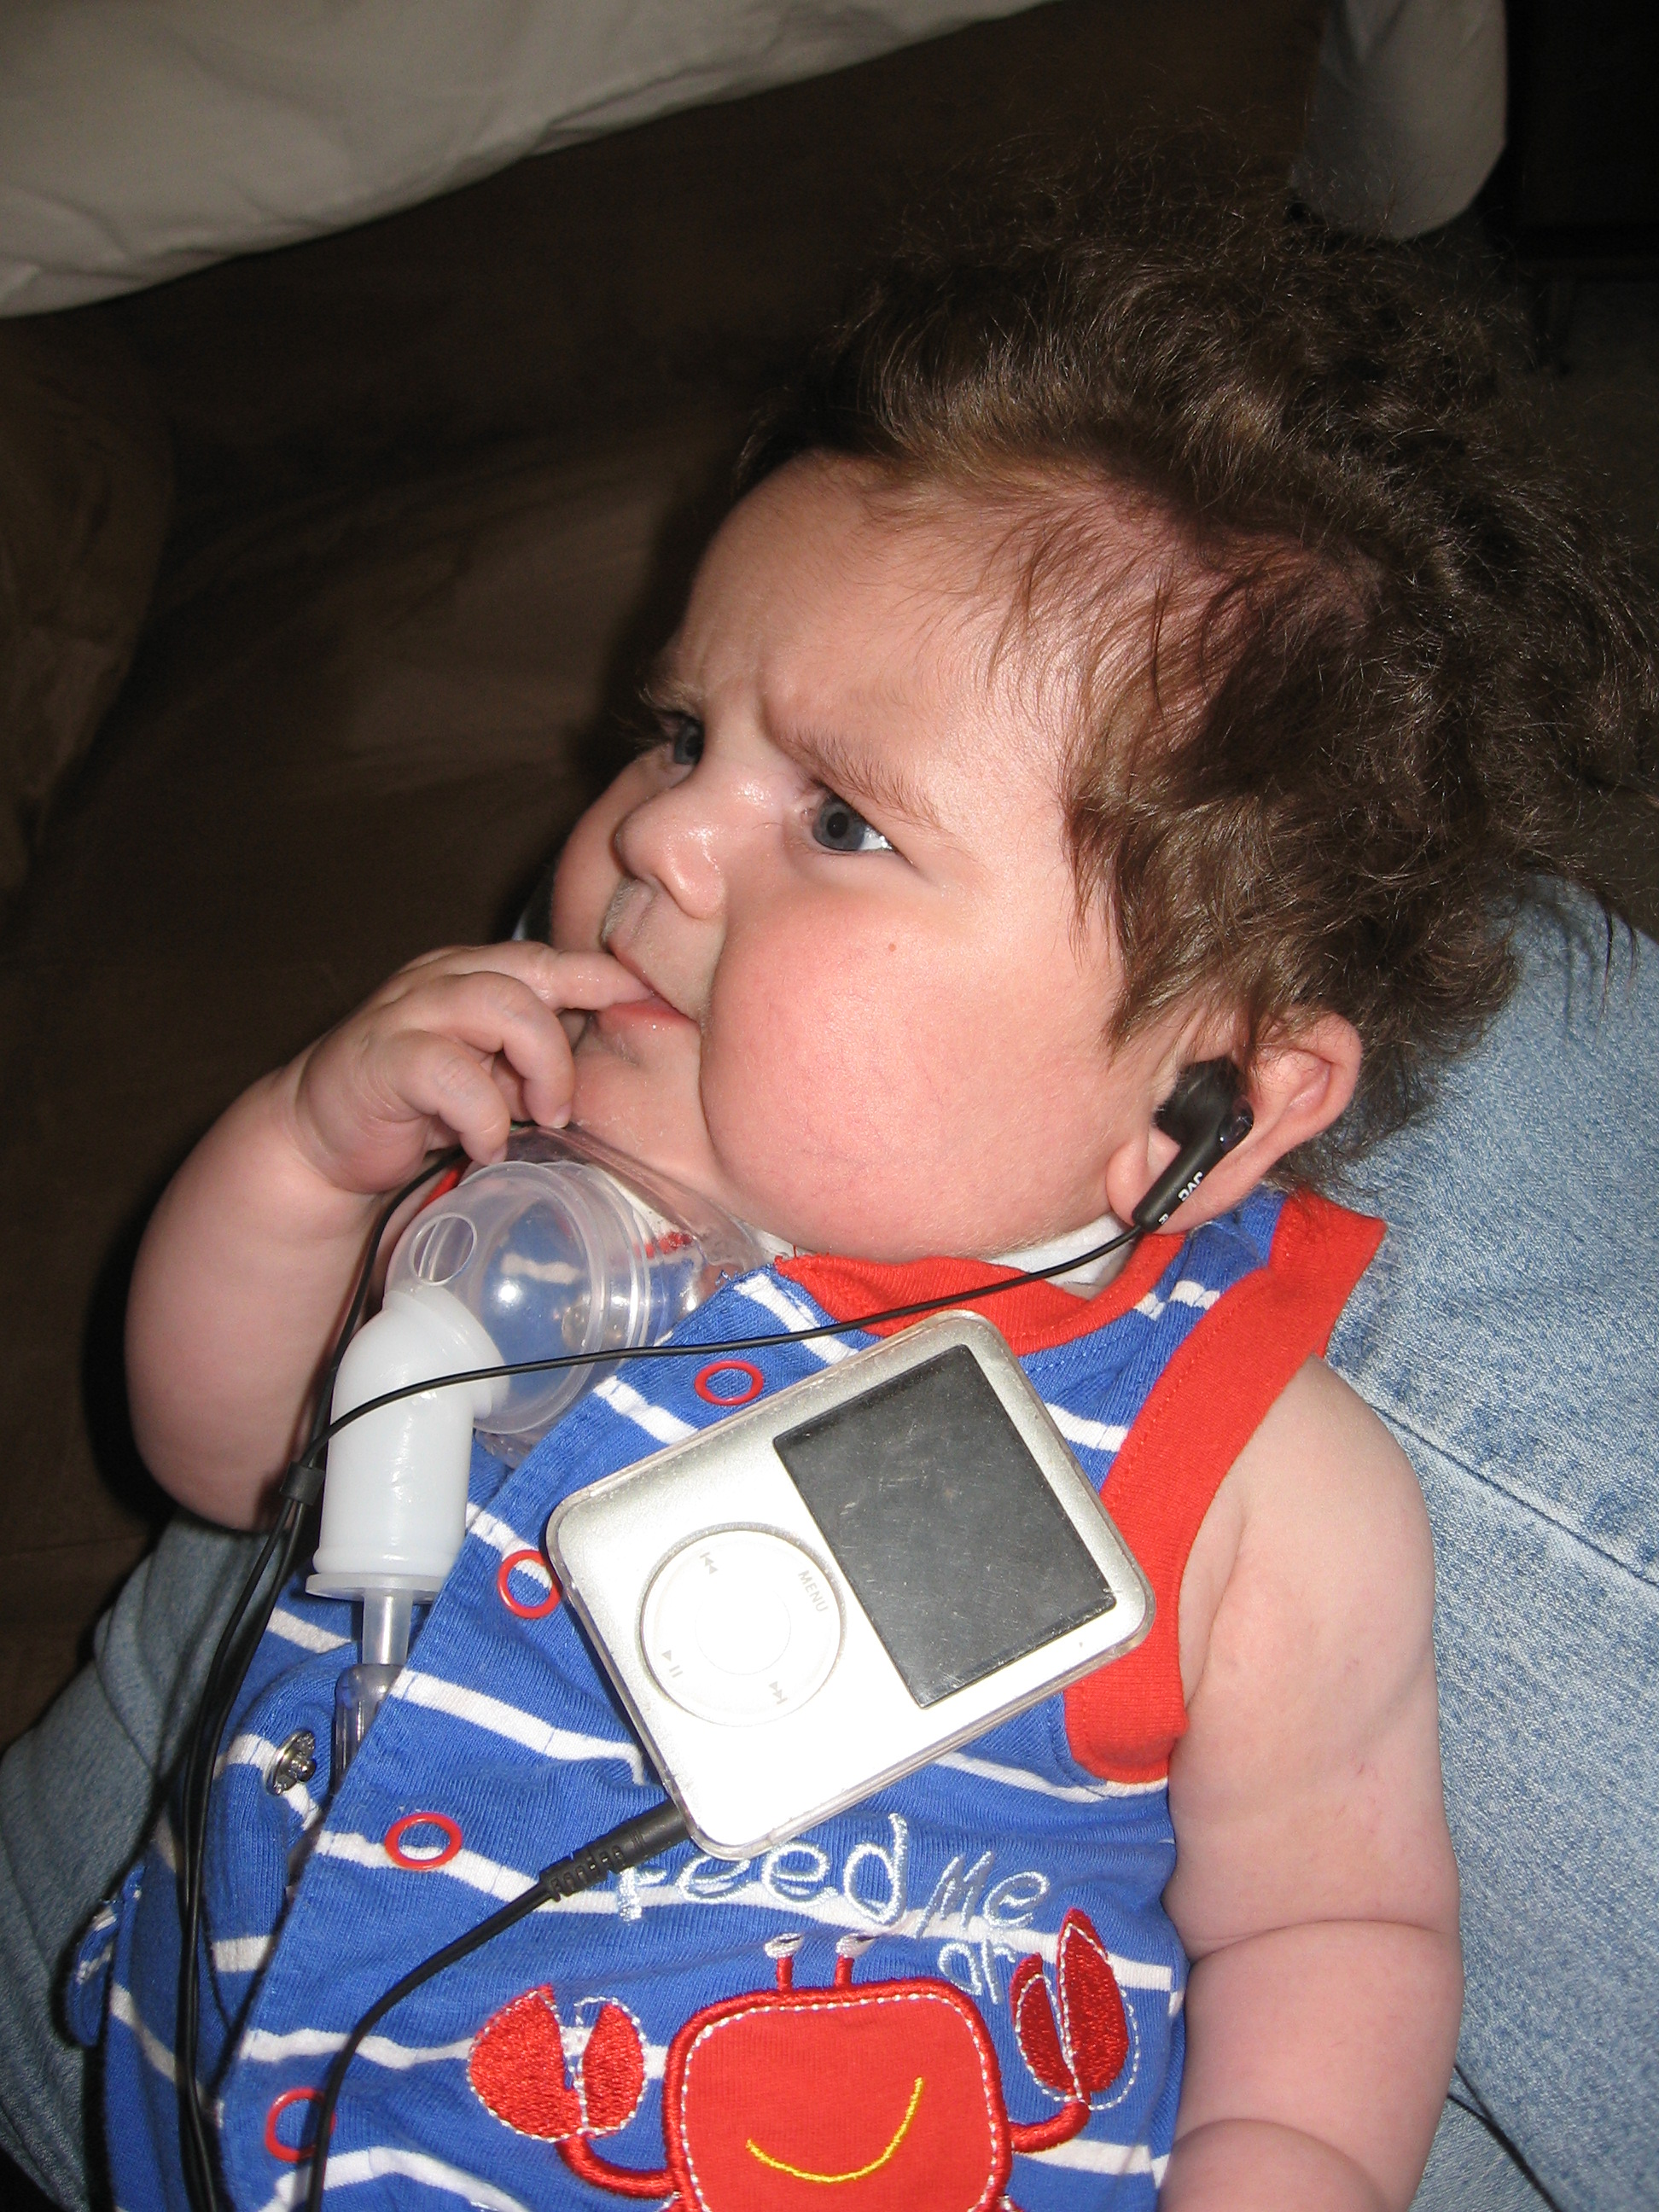 Listening to Max's Ipod